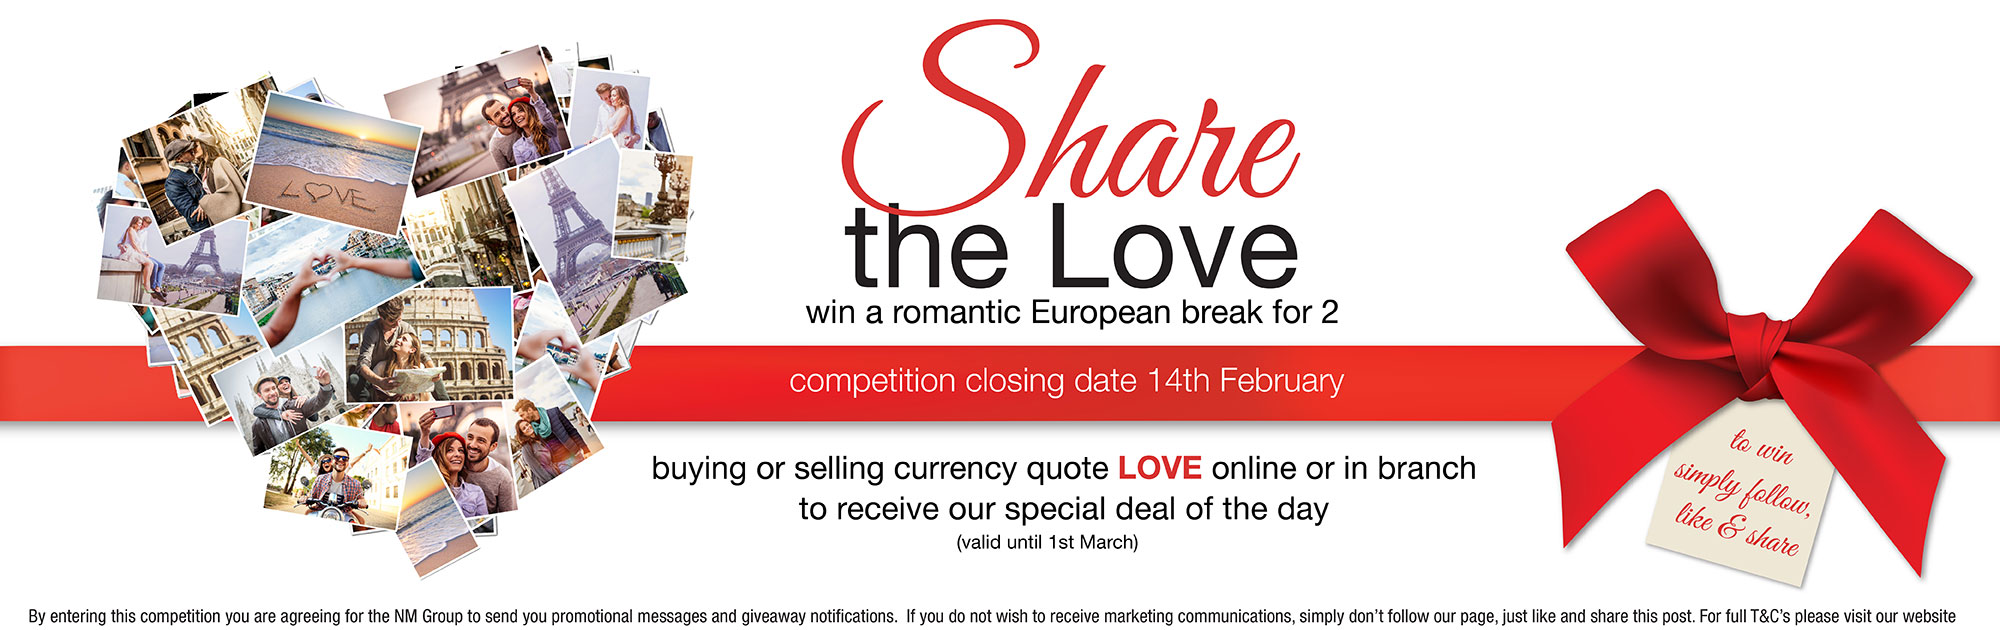 Share the Love Social Media Giveaway